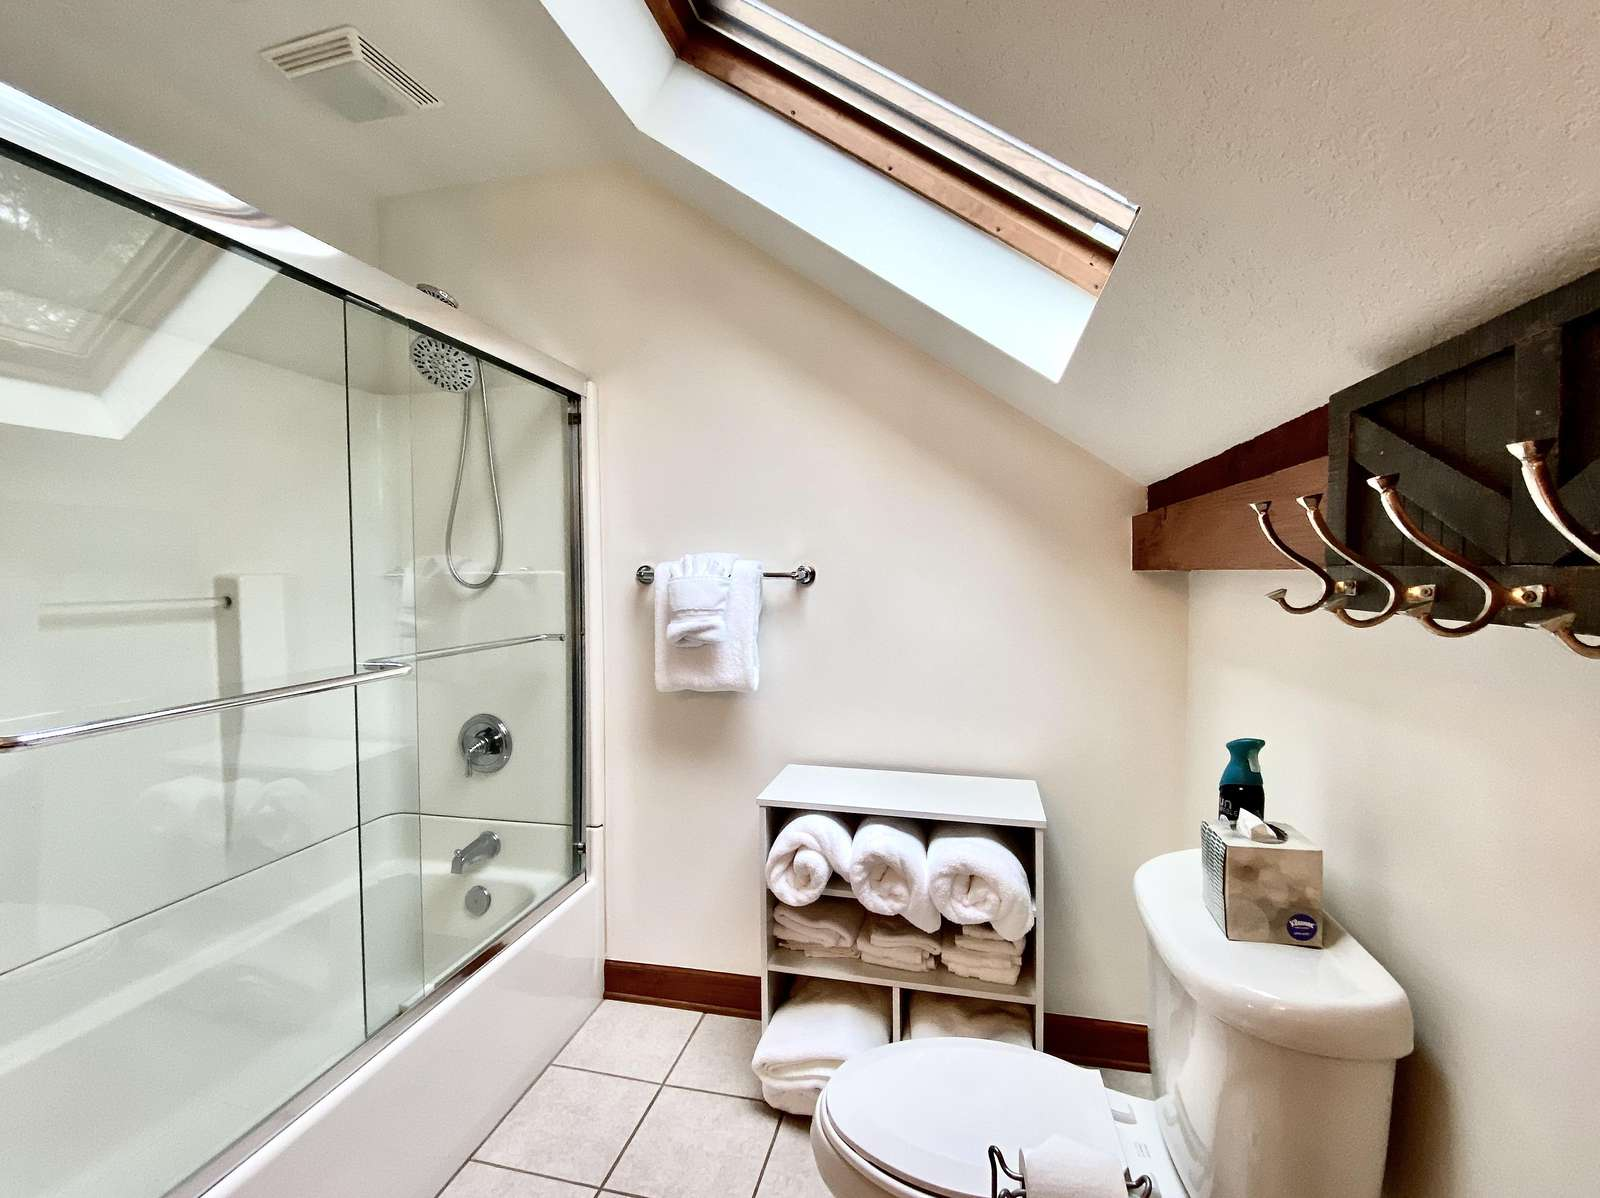 Upstairs Full Bathroom is Large and Light Filled